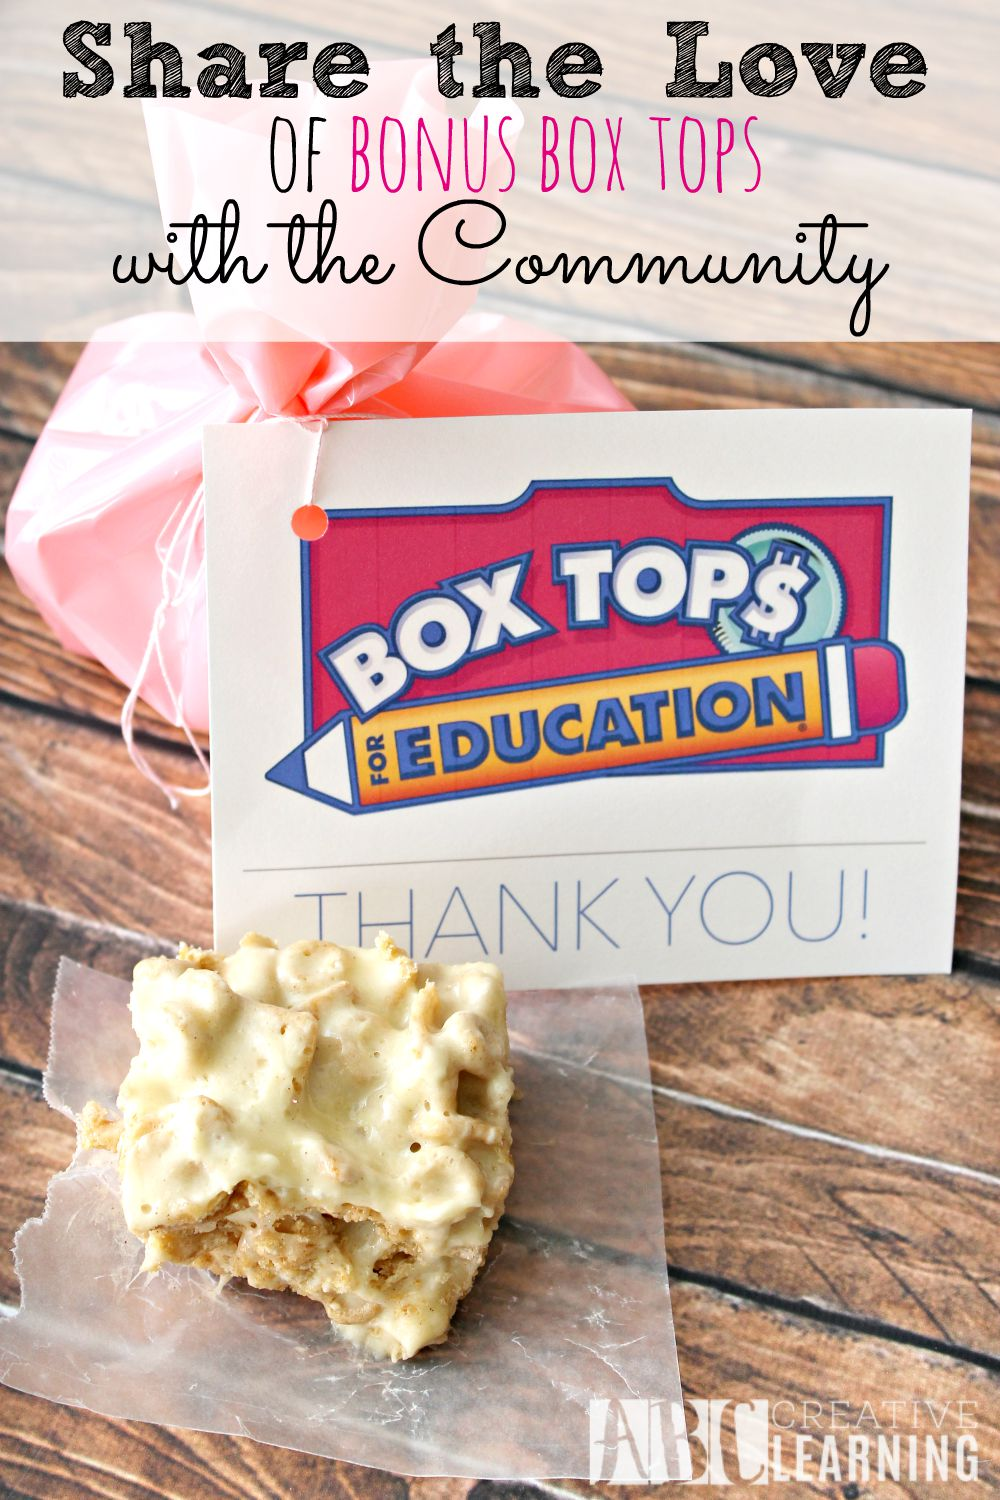 Share the Love of Bonus Box Tops with the Community